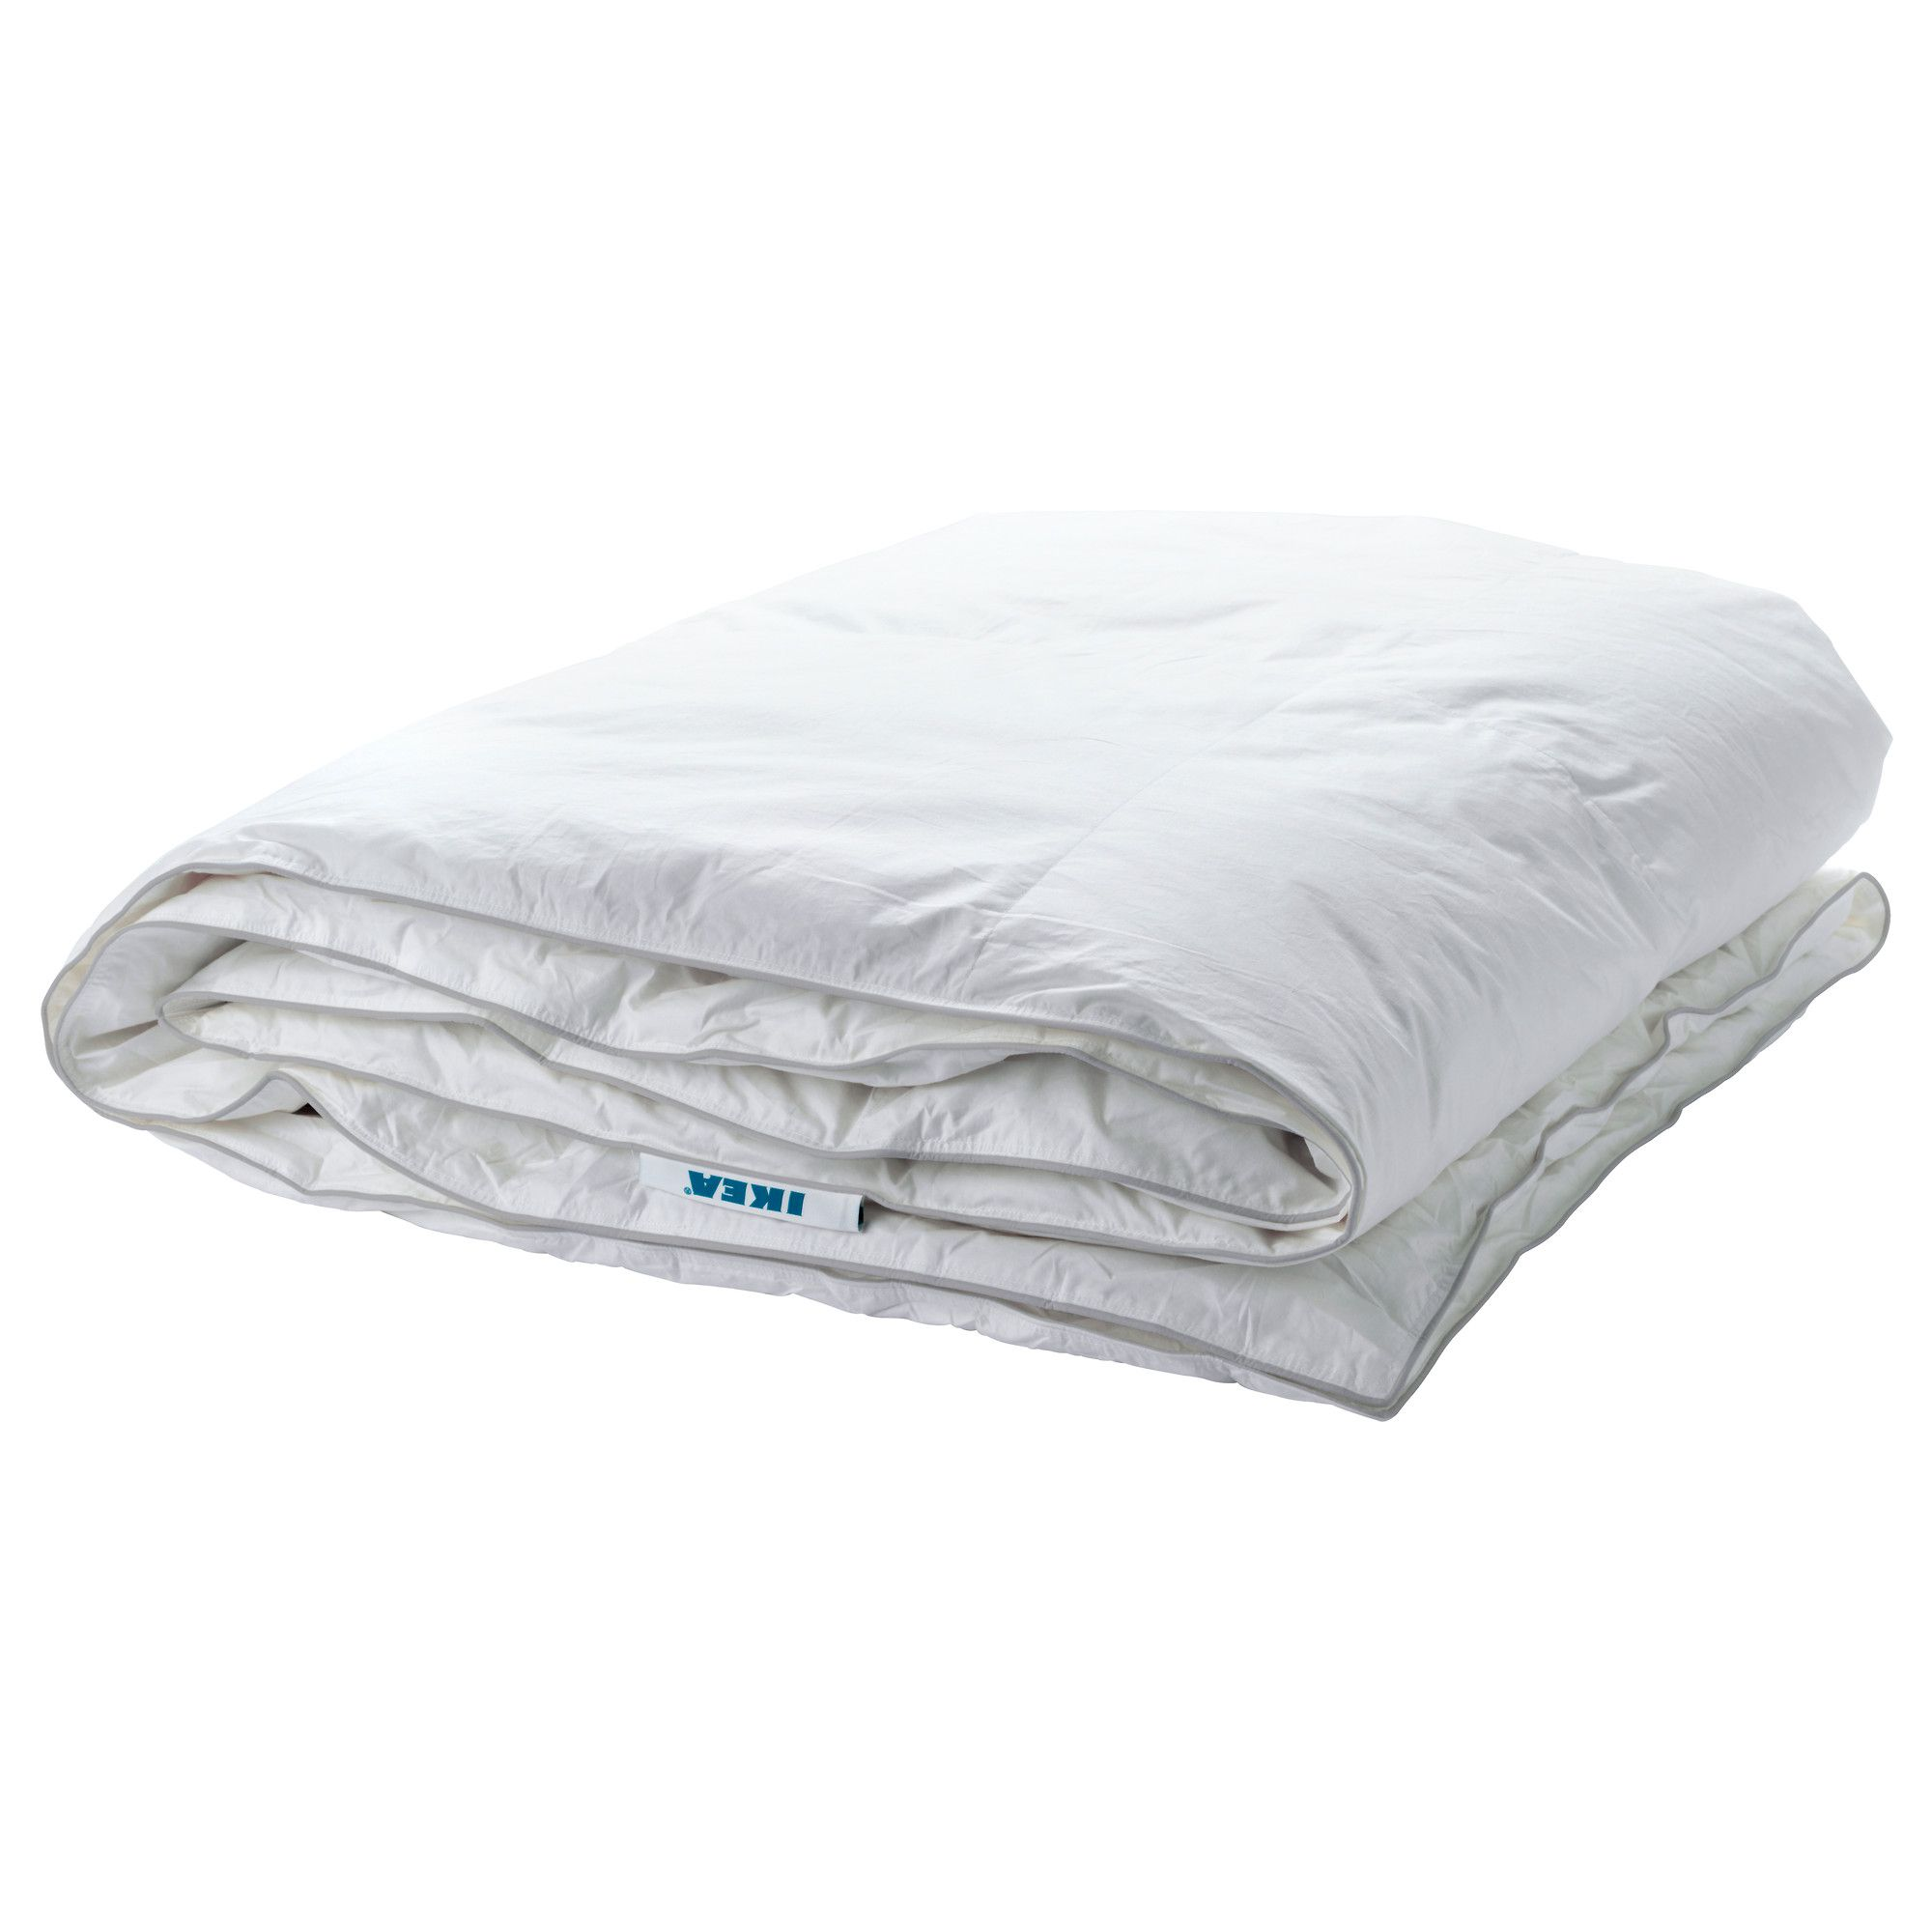 Mysa Vete Down Comforter Warmth Rate 5 Fullqueen Ikea Items